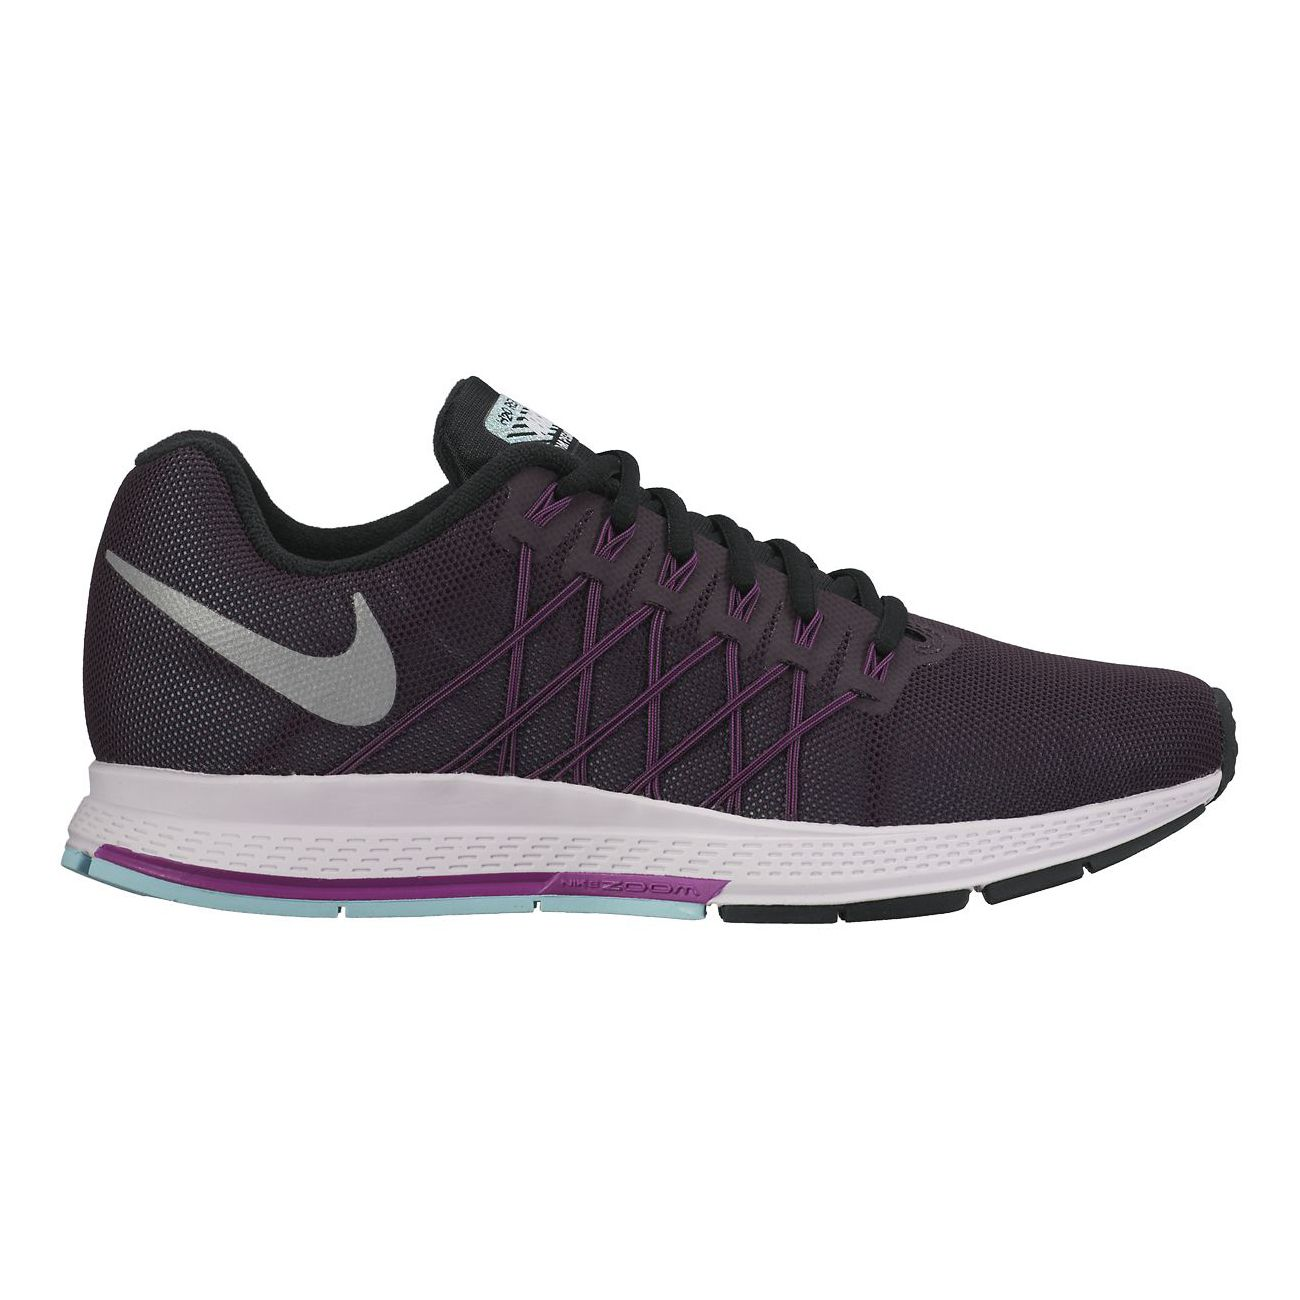 699b70ee0406 The Nike Air Zoom Pegasus 32 Flash Women s Running Shoe delivers highly  responsive cushioning and lightweight support to help you find your fastest  run.